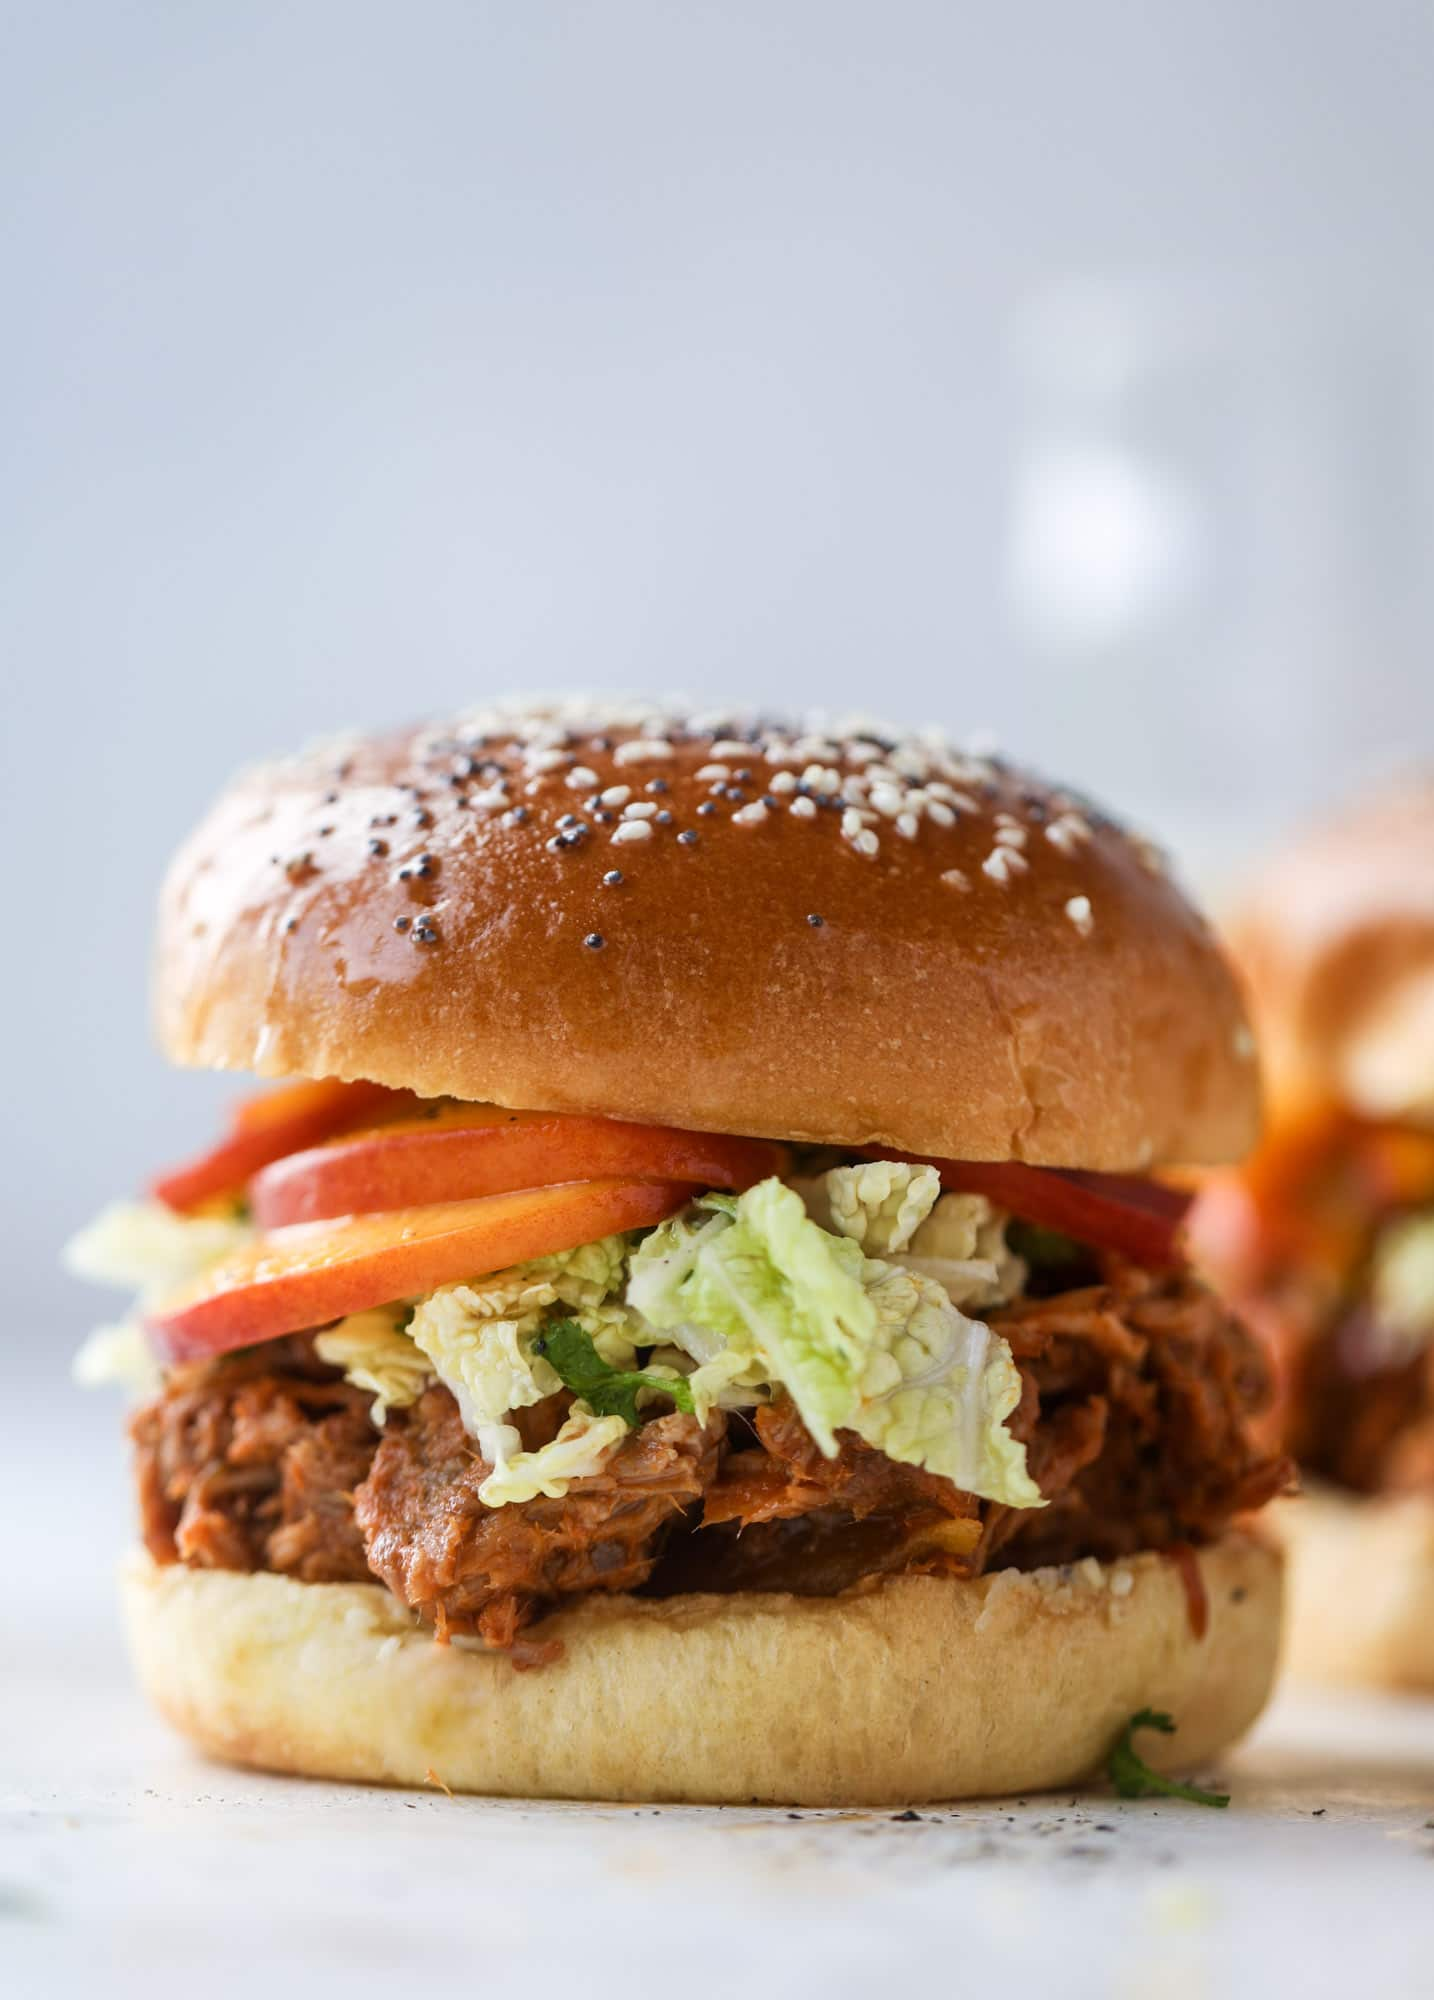 This chipotle pulled pork sandwich is spicy, sweet and saucy. Throw it on a bun or a plate and top it with the most delicious quick pickled peaches and napa cabbage slaw. Flavor and texture make this sandwich incredible! I howsweeteats.com #pulled #pork #chipotle #pickled #peaches #slaw #sandwiches #slow #cooker